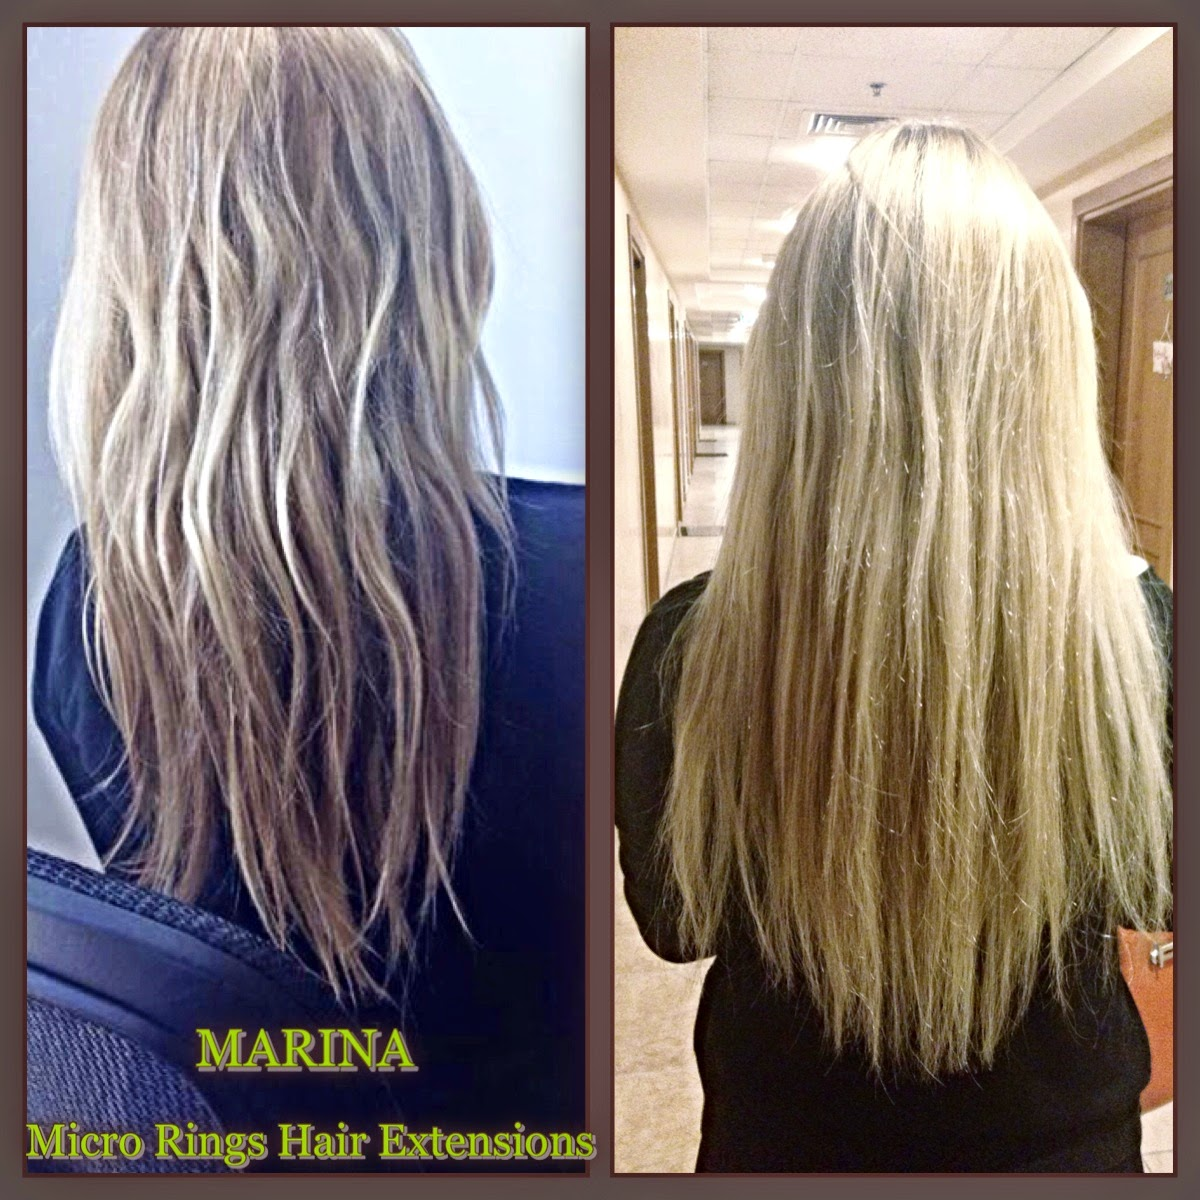 Keratin bonded hair extensions micro rings hair extensions micro rings hair extensions pmusecretfo Gallery